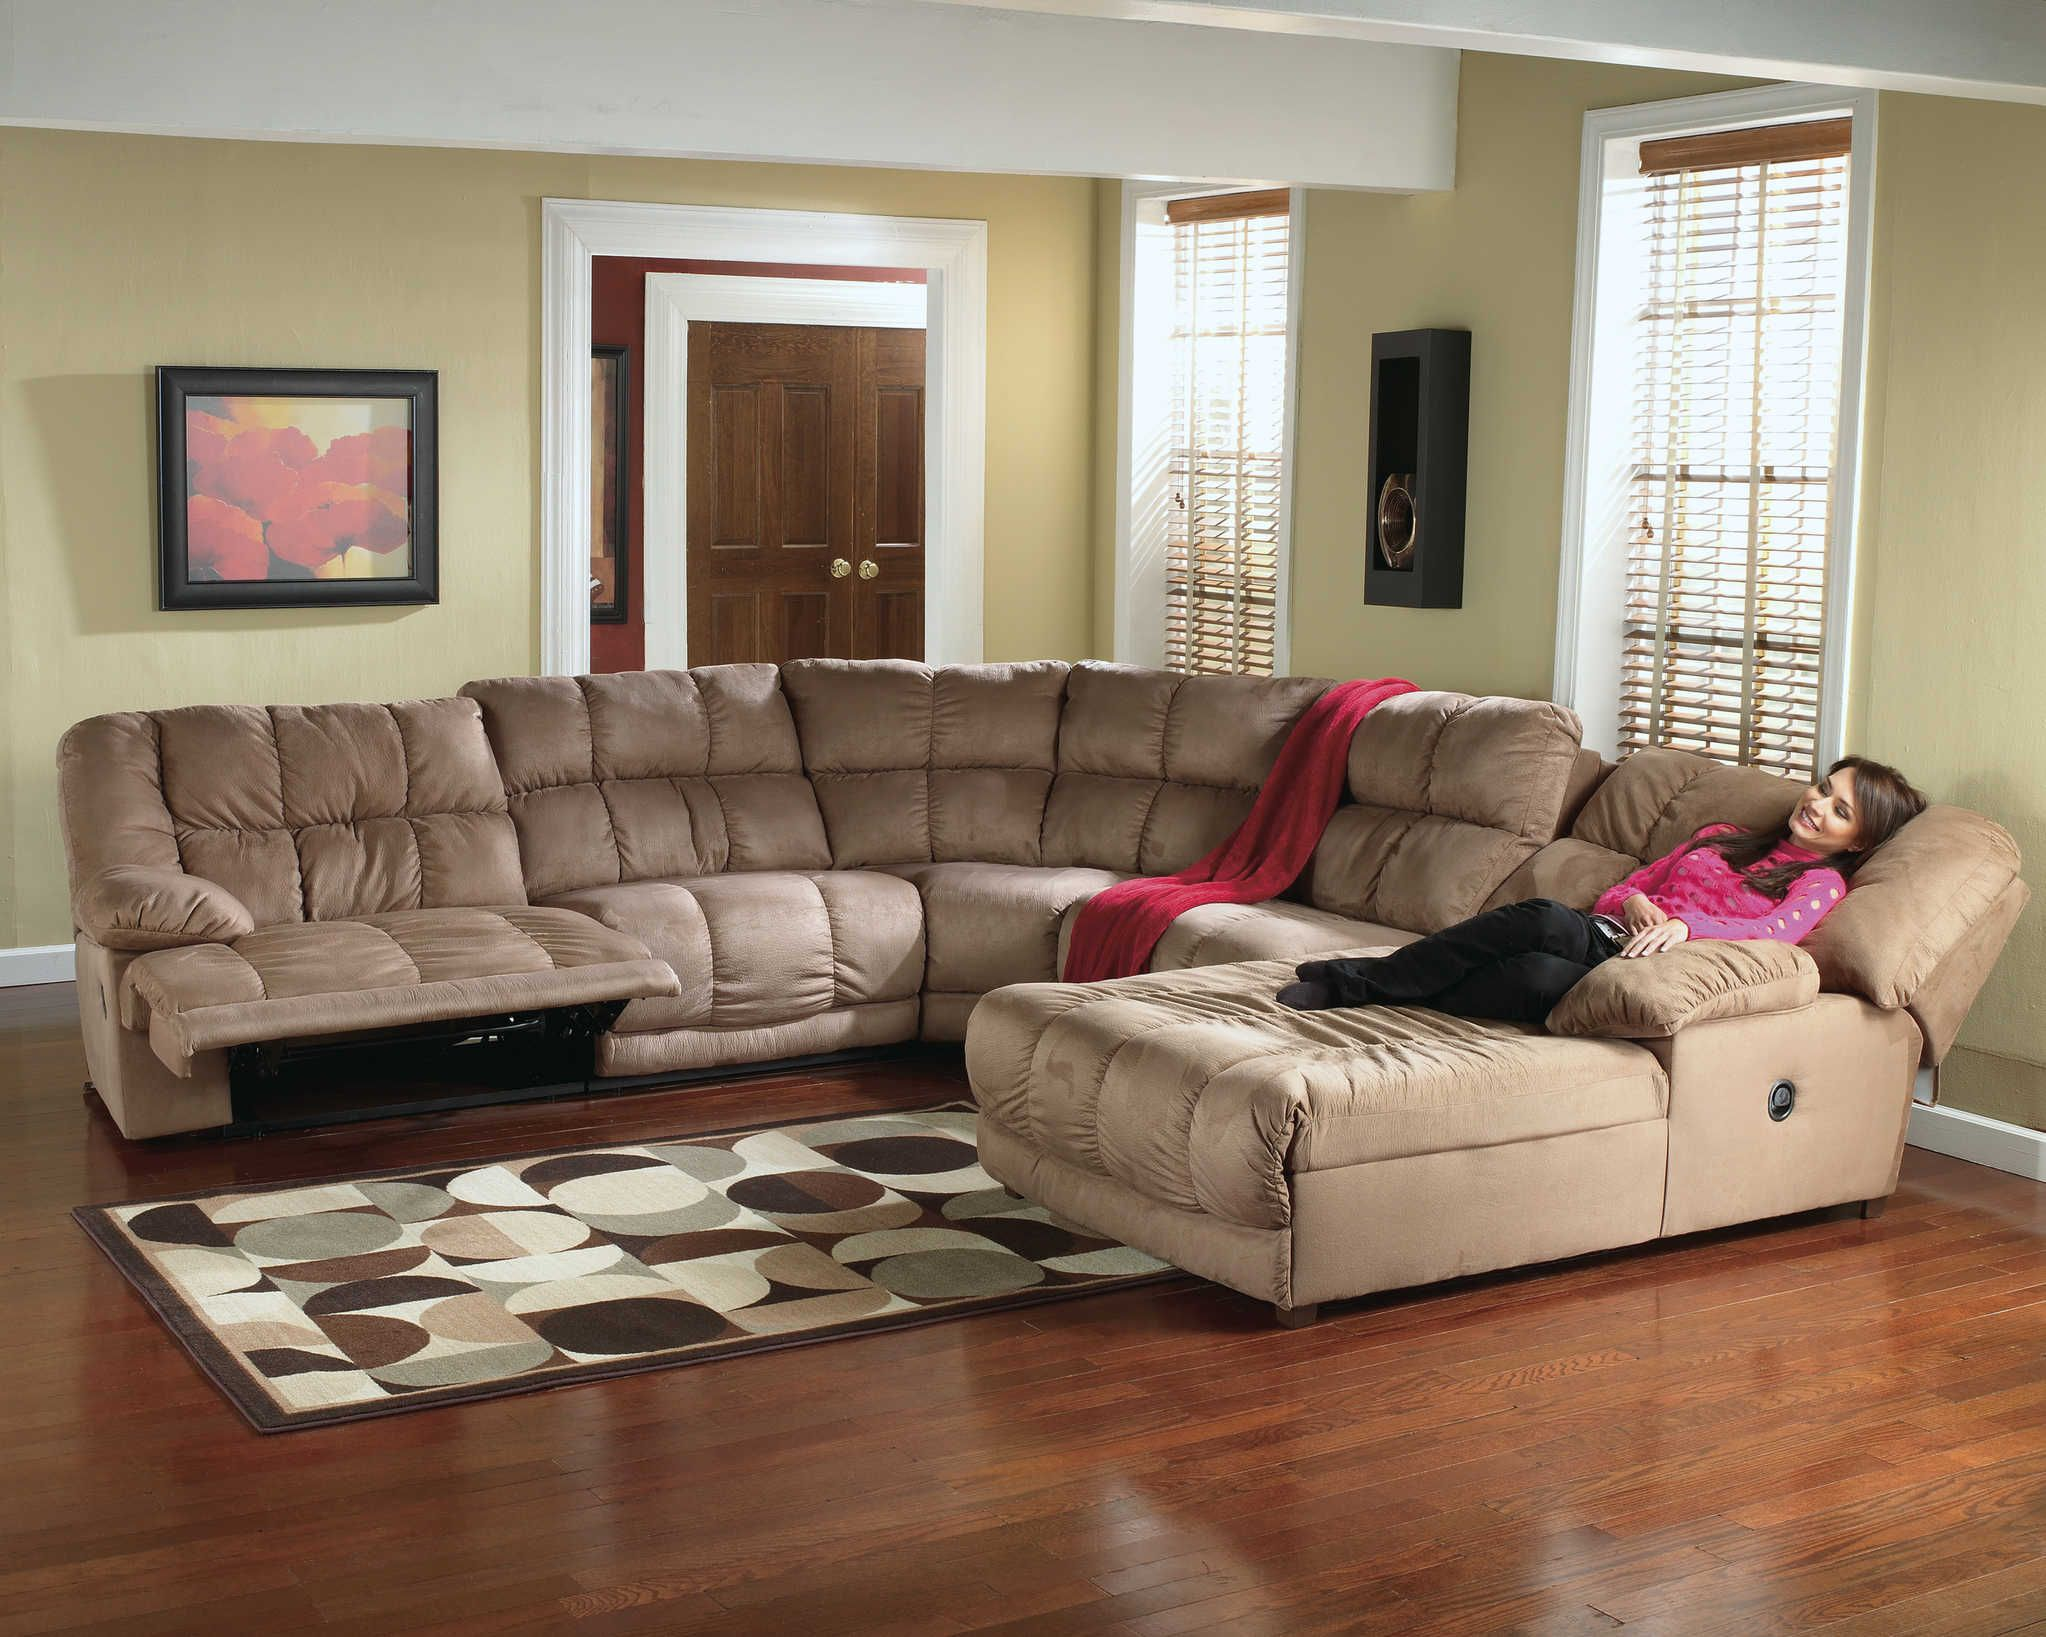 microfiber recliner sectional sectional sofa recliner chaise 260 rh pinterest com small sectional sofa with recliner and chaise sectional sofa with chaise recliner and sleeper